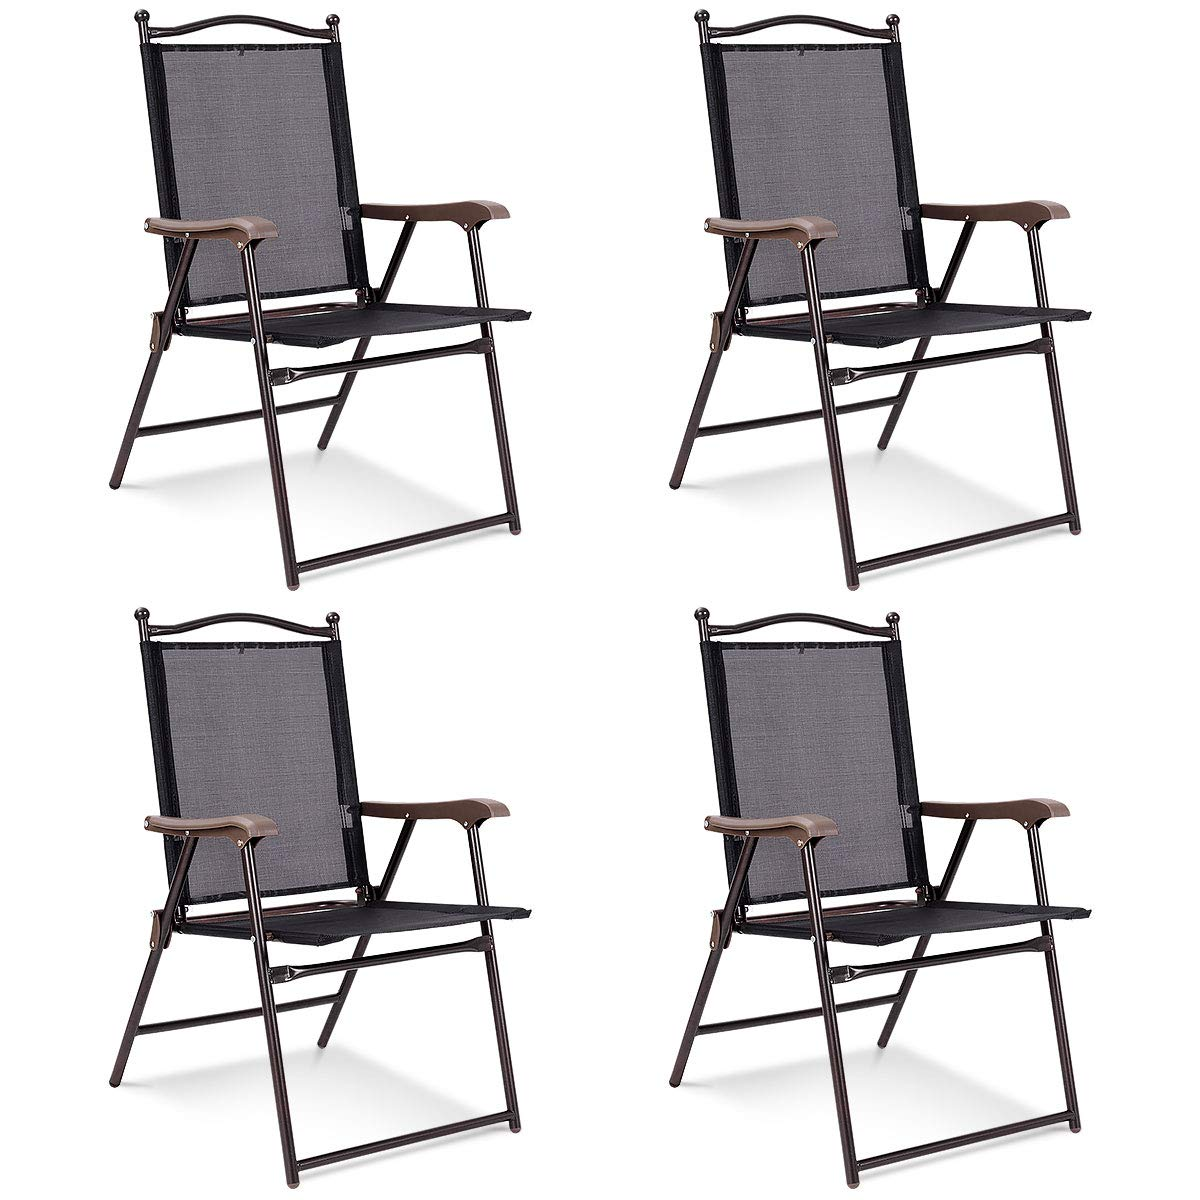 c0226b4db794 Giantex Set of 4 Folding Sling Back Chairs Indoor Outdoor Reclining Camping  Chairs Garden Patio Pool